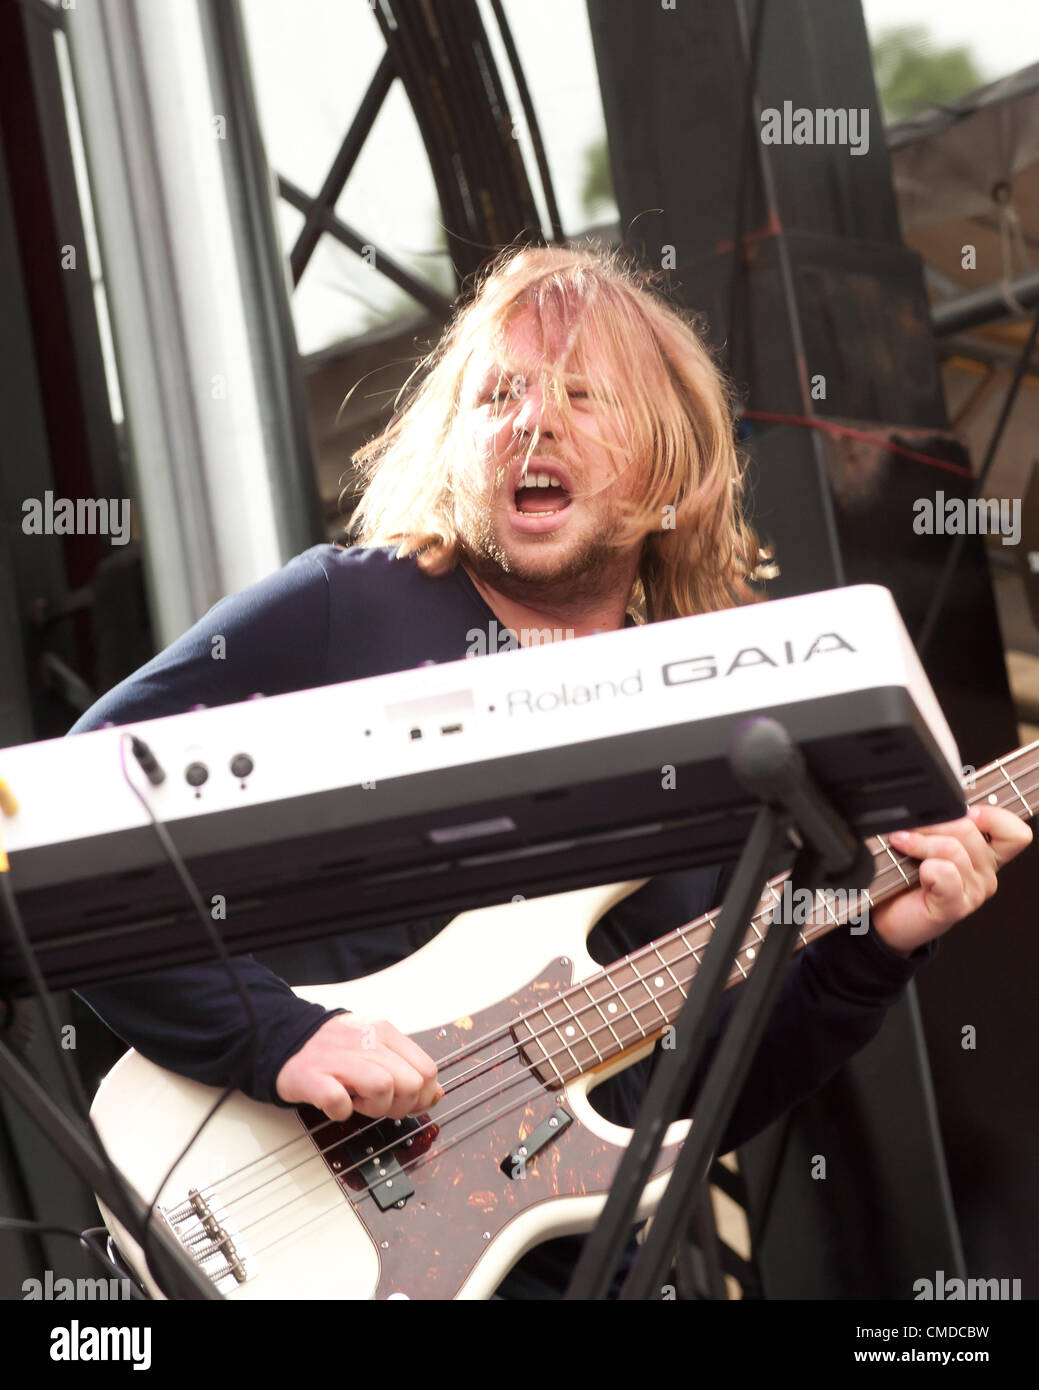 Rock star / musician Ben McKee of the alt rock  indie rock  indy rock band Imagine Dragons | Performing / playing - Stock Image